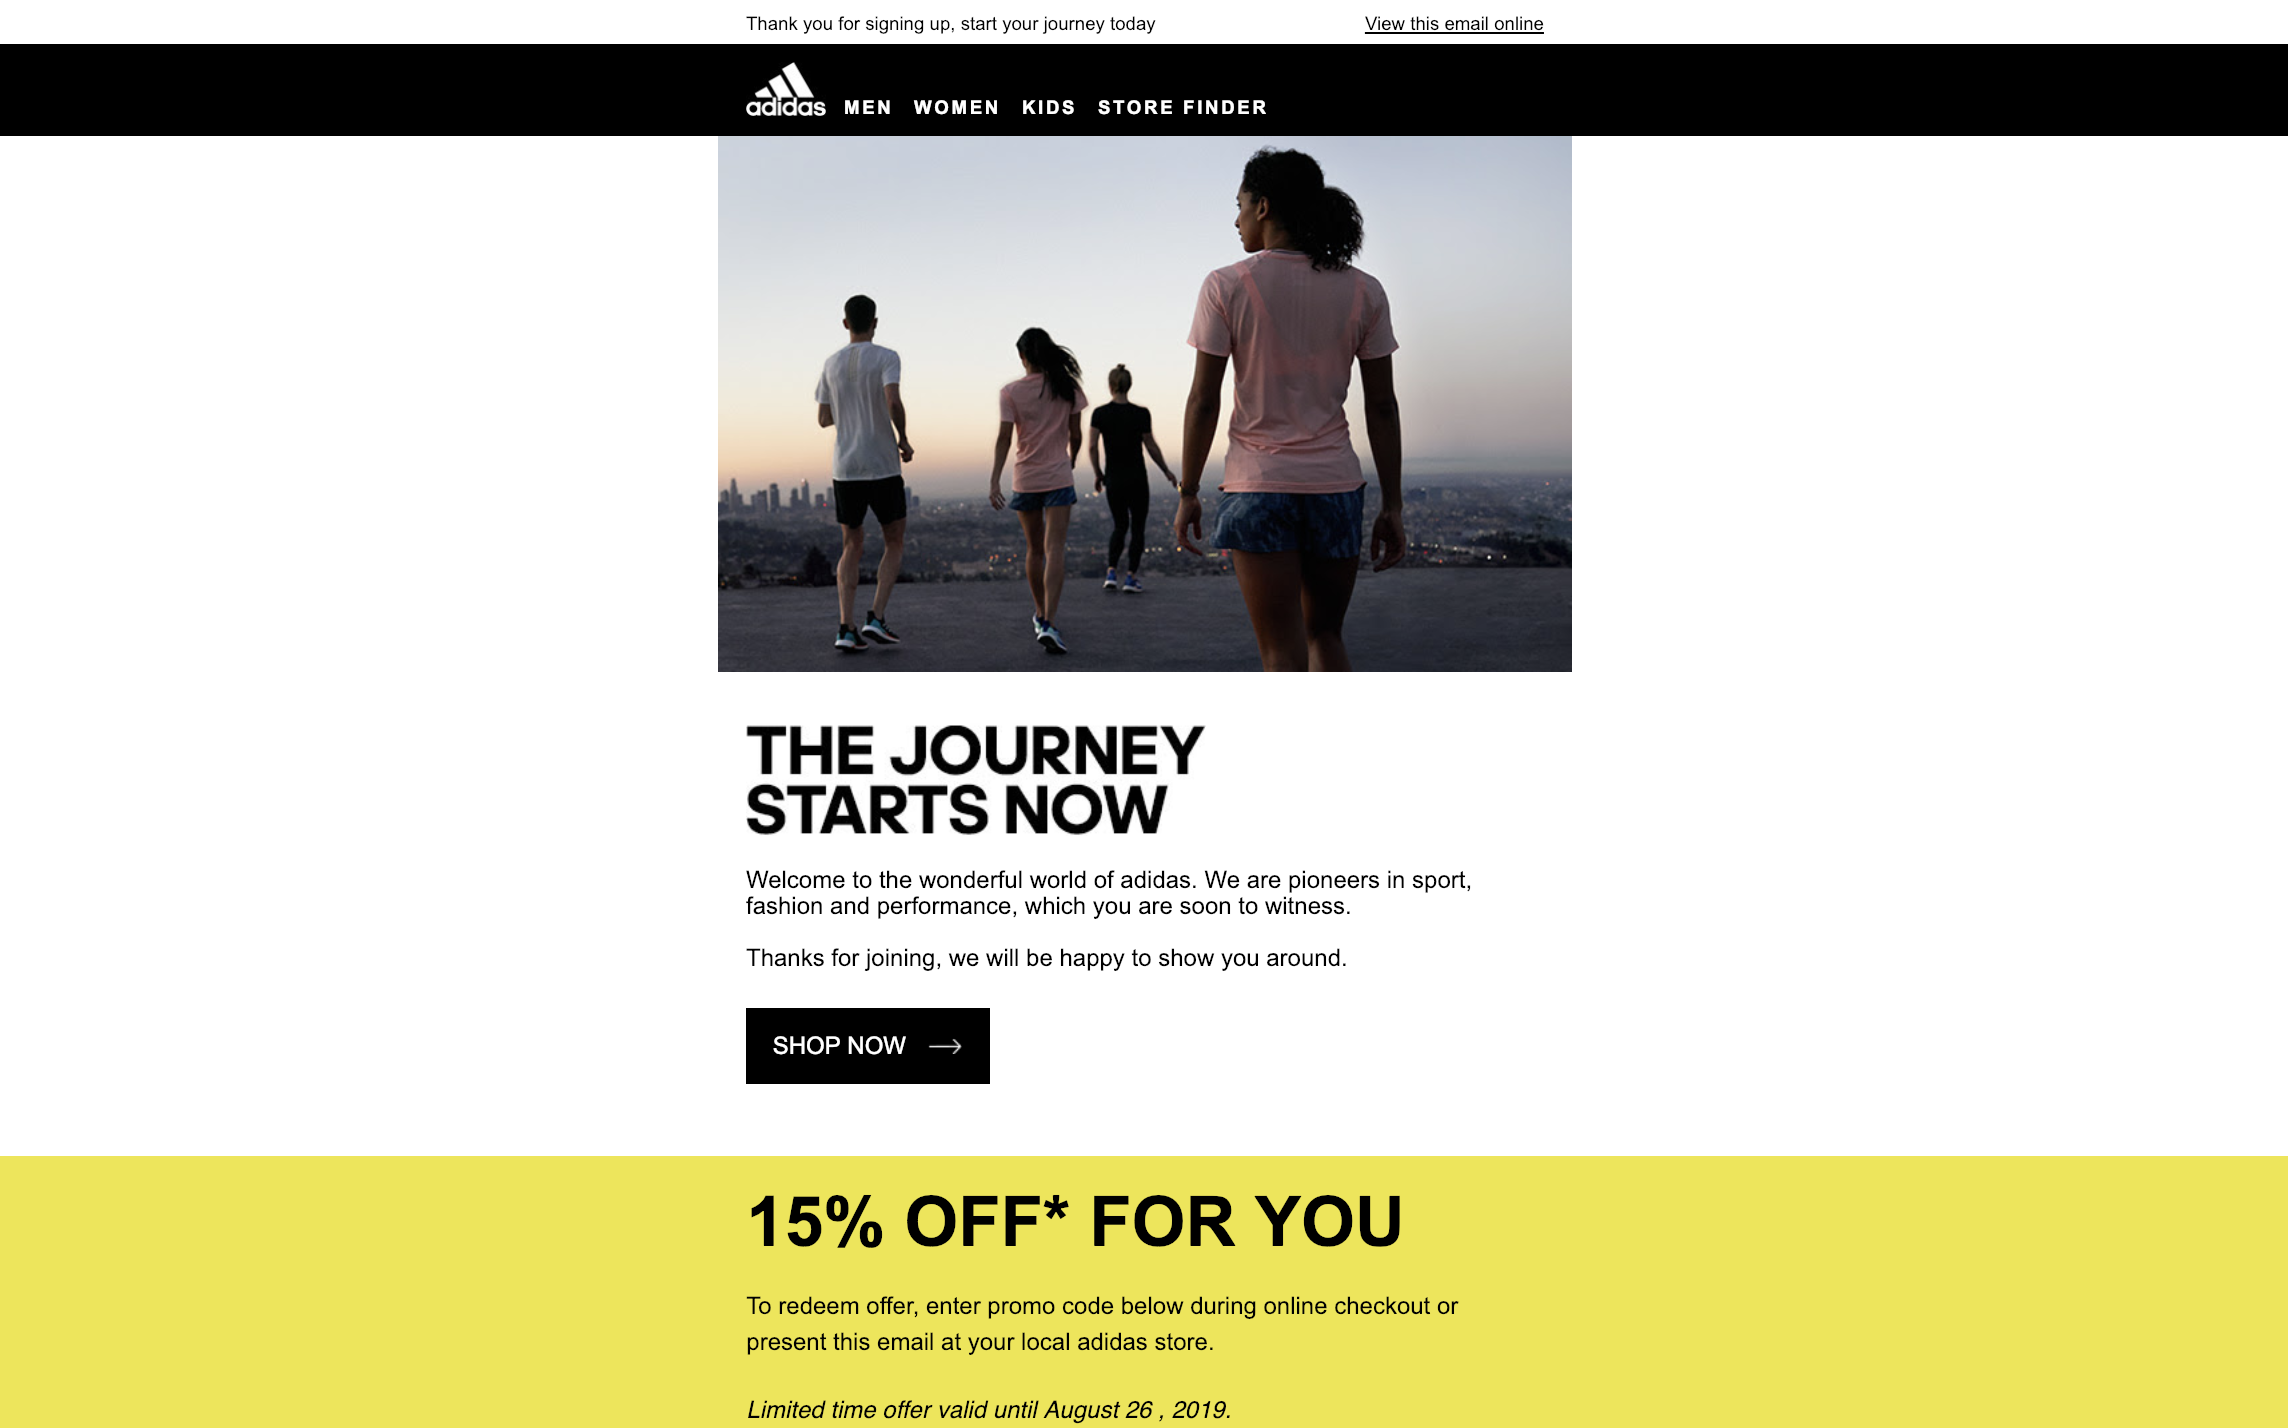 adidas-welcome-email-discount